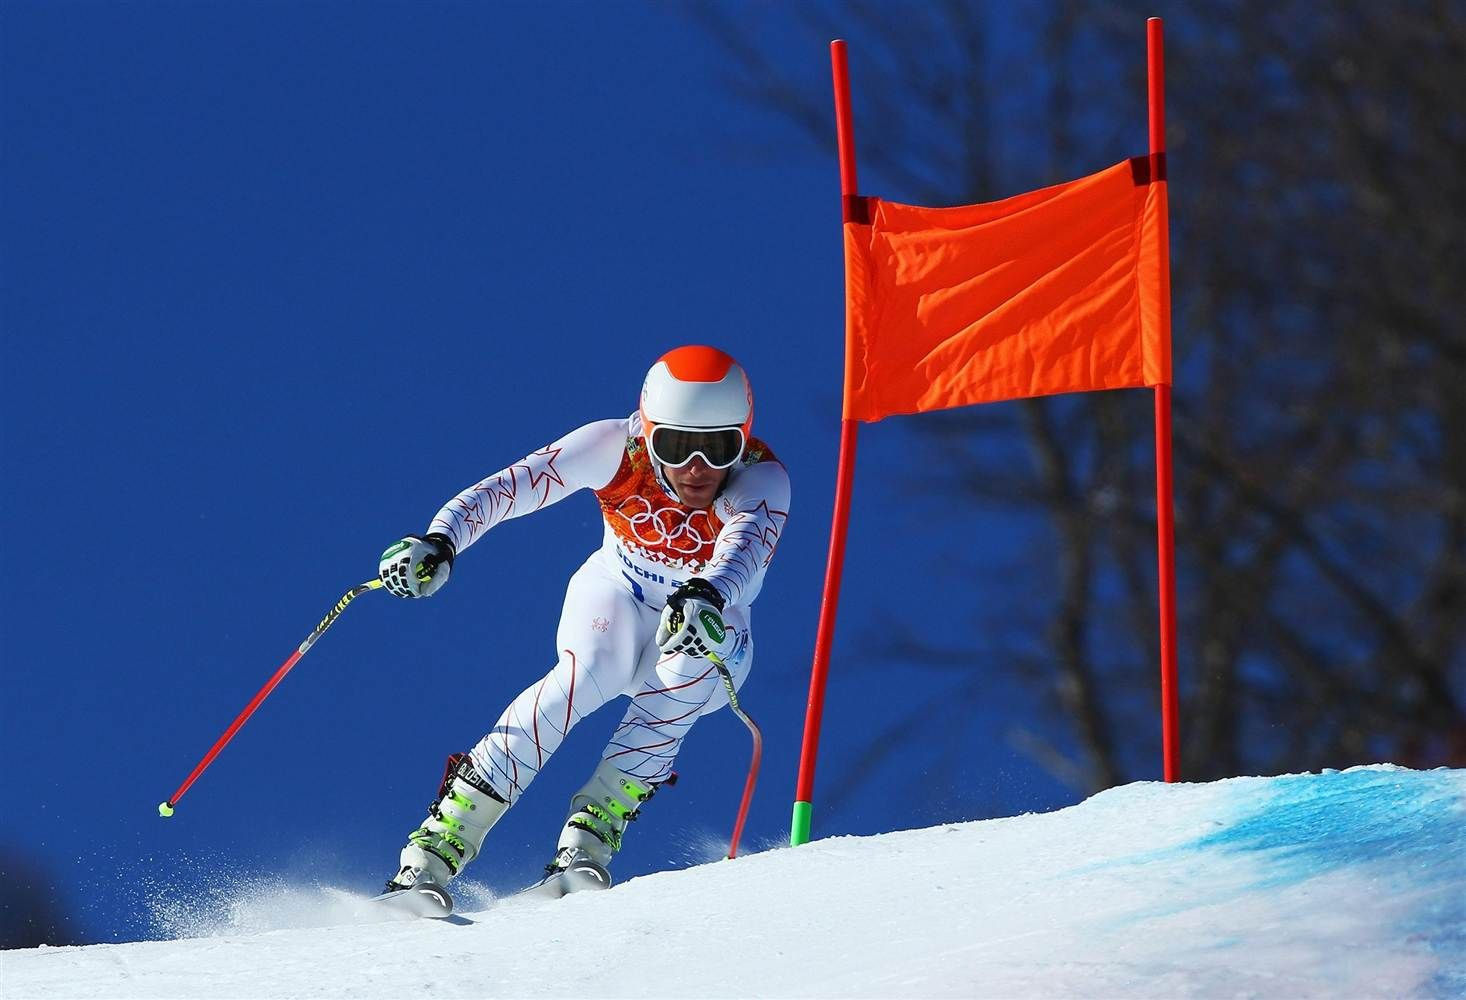 Bode Miller at the Winter Olympics in Sochi Russia